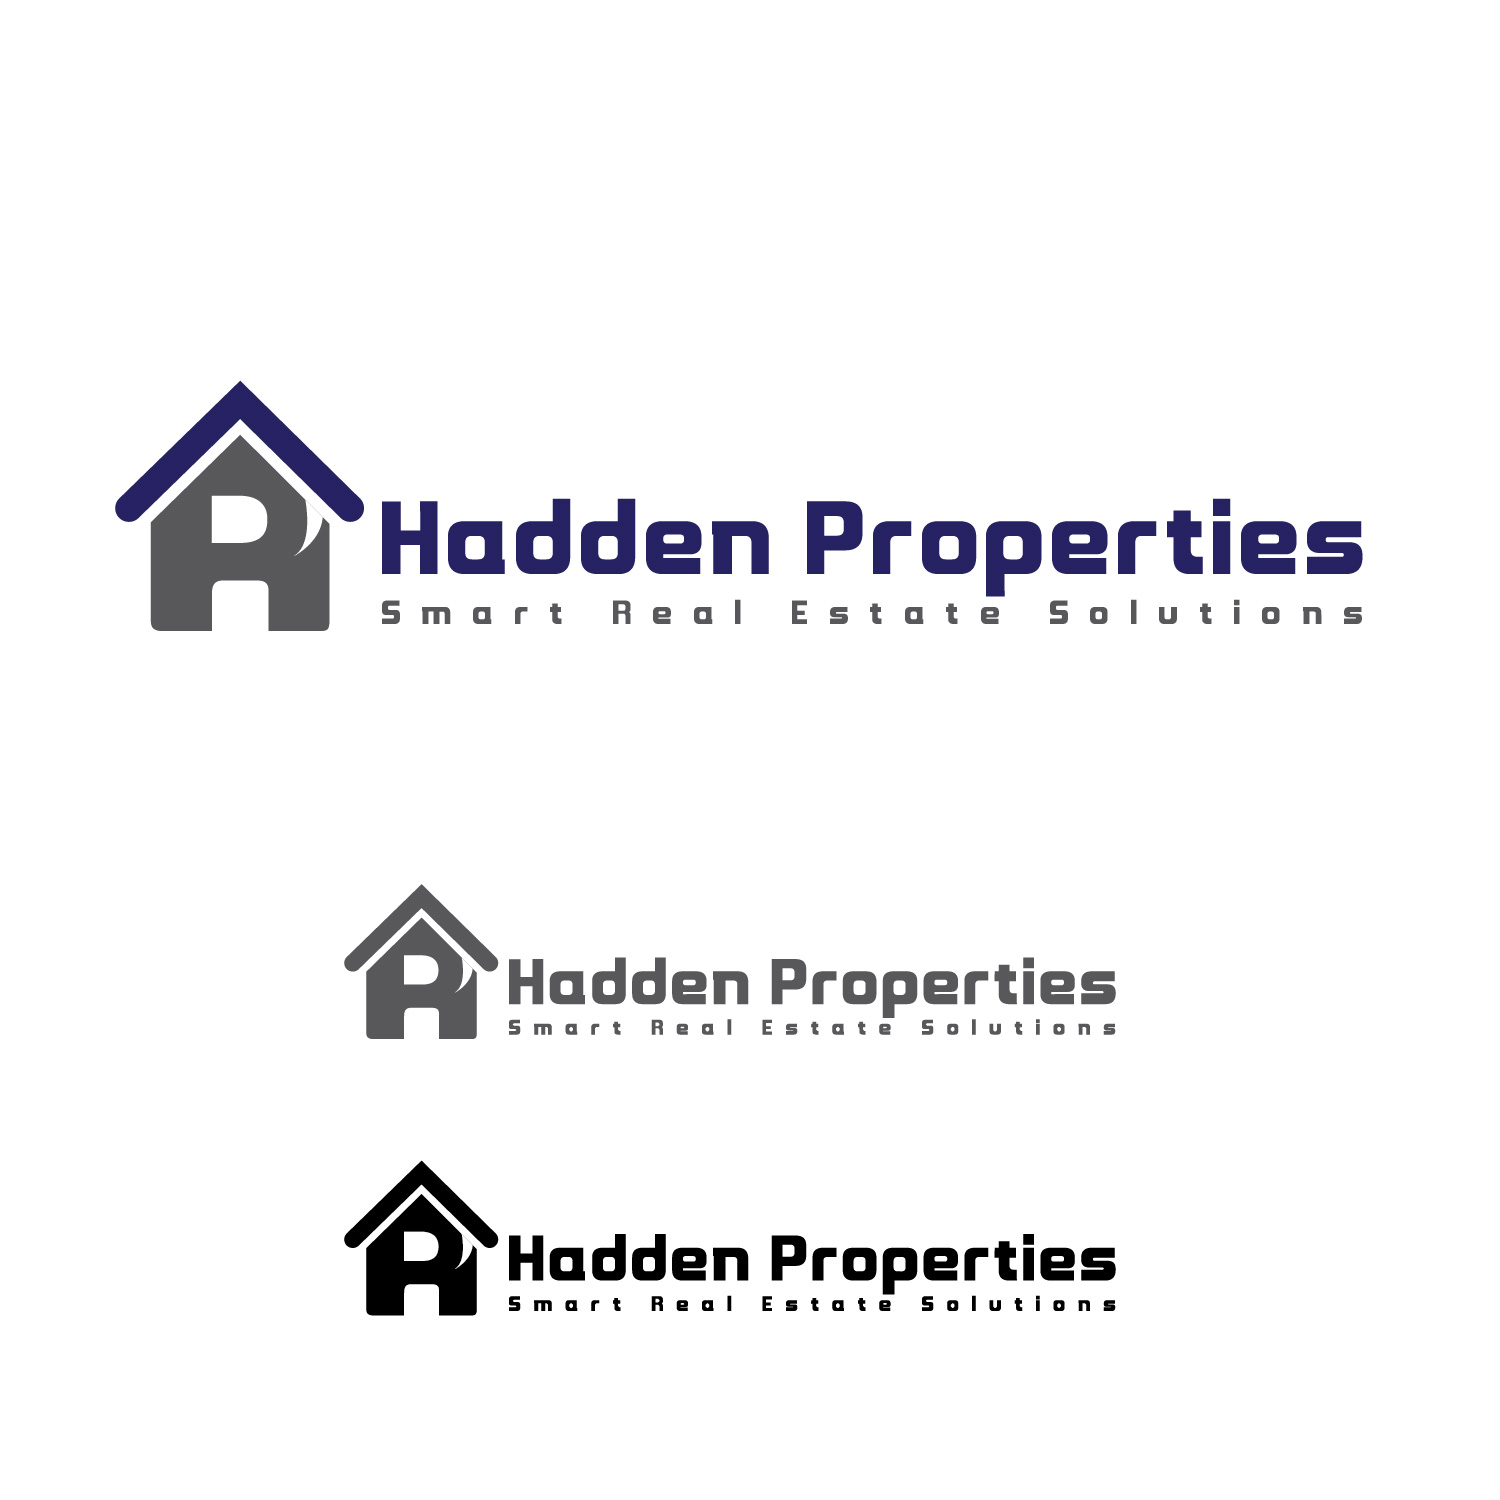 Logo Design by lagalag - Entry No. 38 in the Logo Design Contest Artistic Logo Design for Hadden Properties.